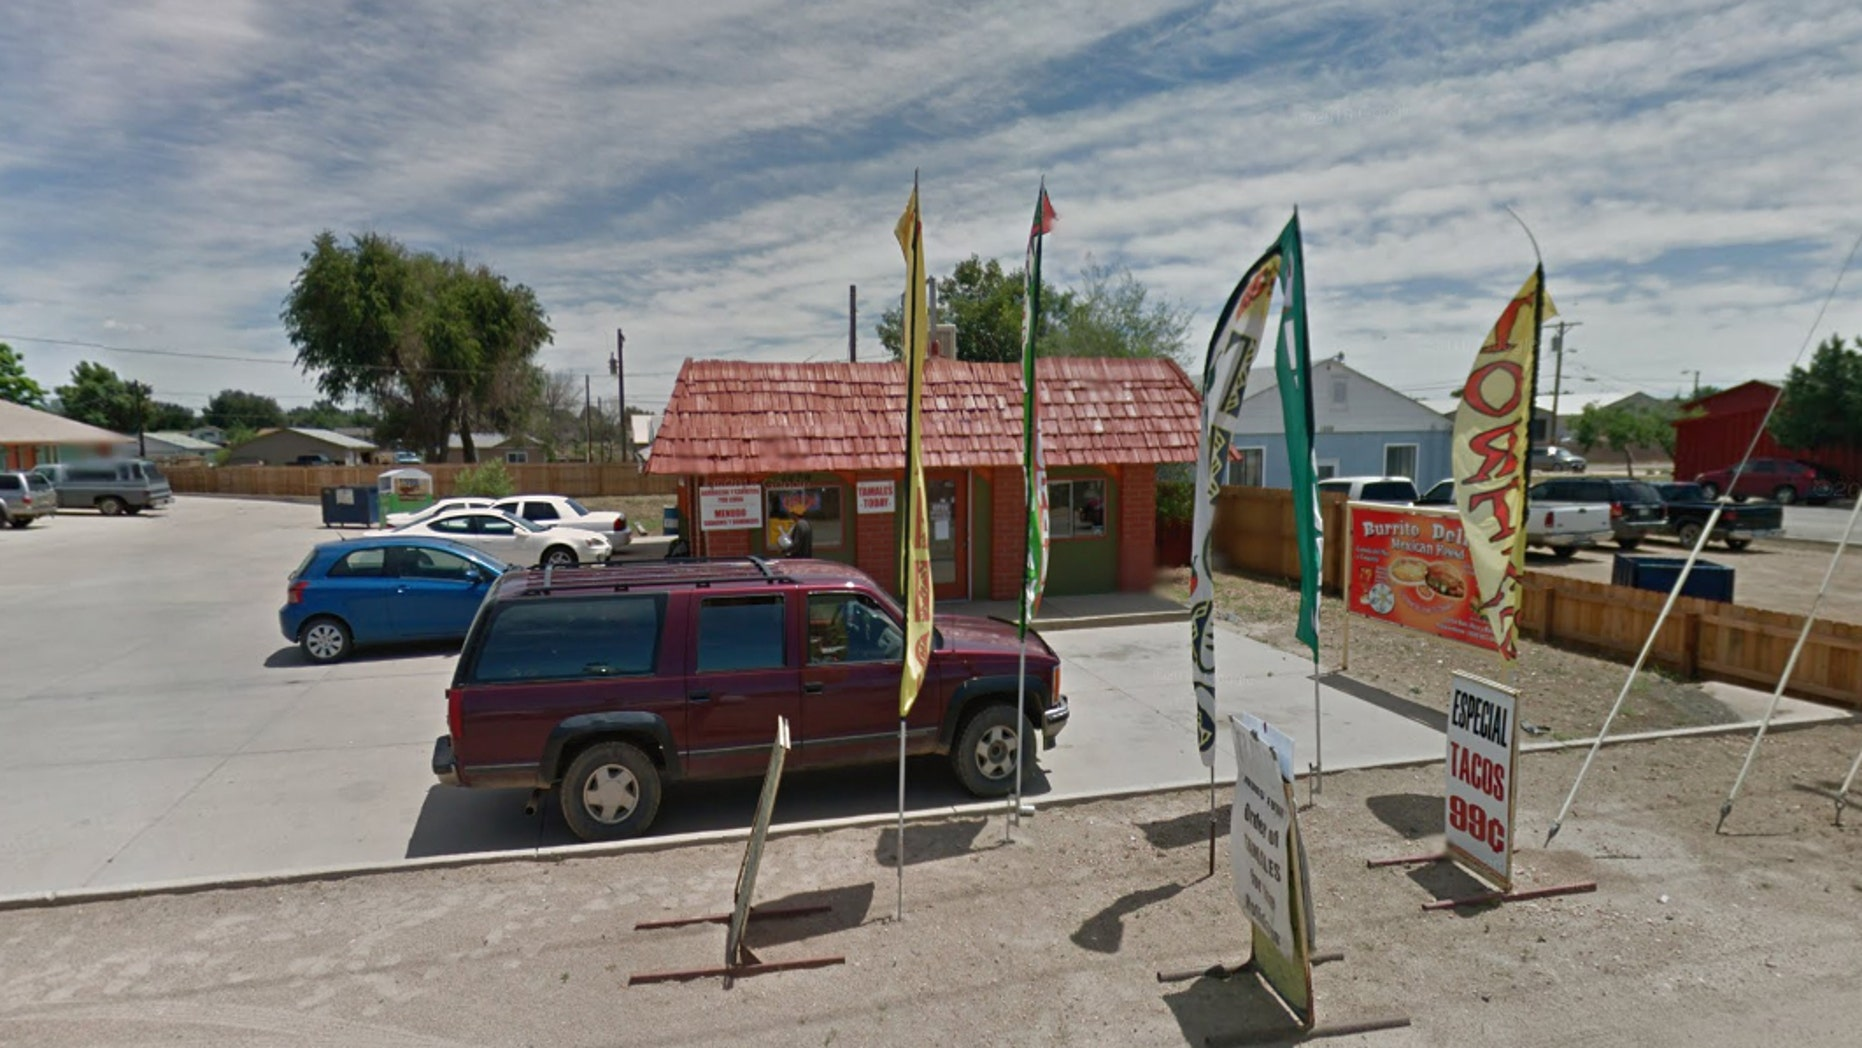 The Burrito Delight restaurant in Fort Lupton, as well as its other location in Dacono, have closed pending an investigation.